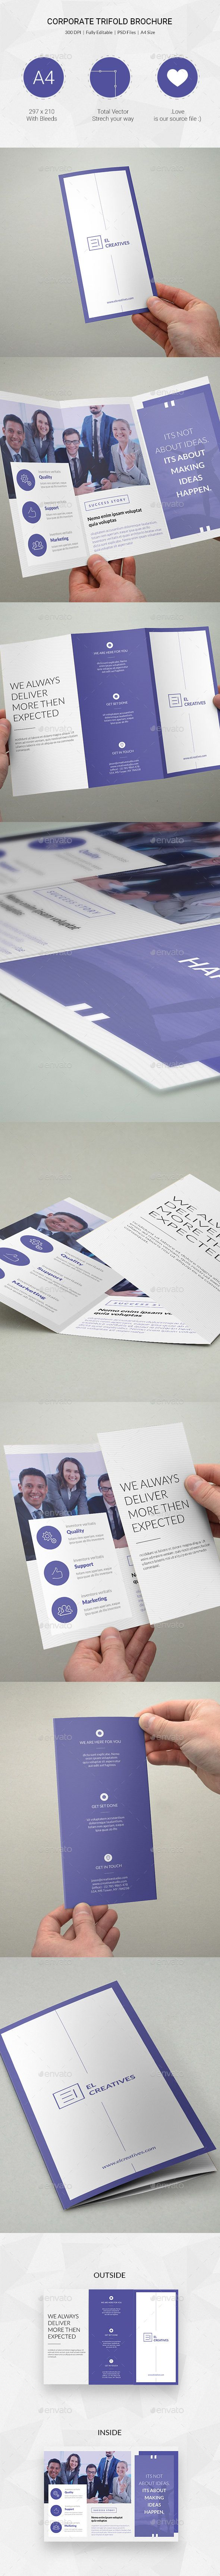 Corporate Trifold Brochure Template #design Download: http://graphicriver.net/item/corporate-trifold-brochure-19/13184179?ref=ksioks